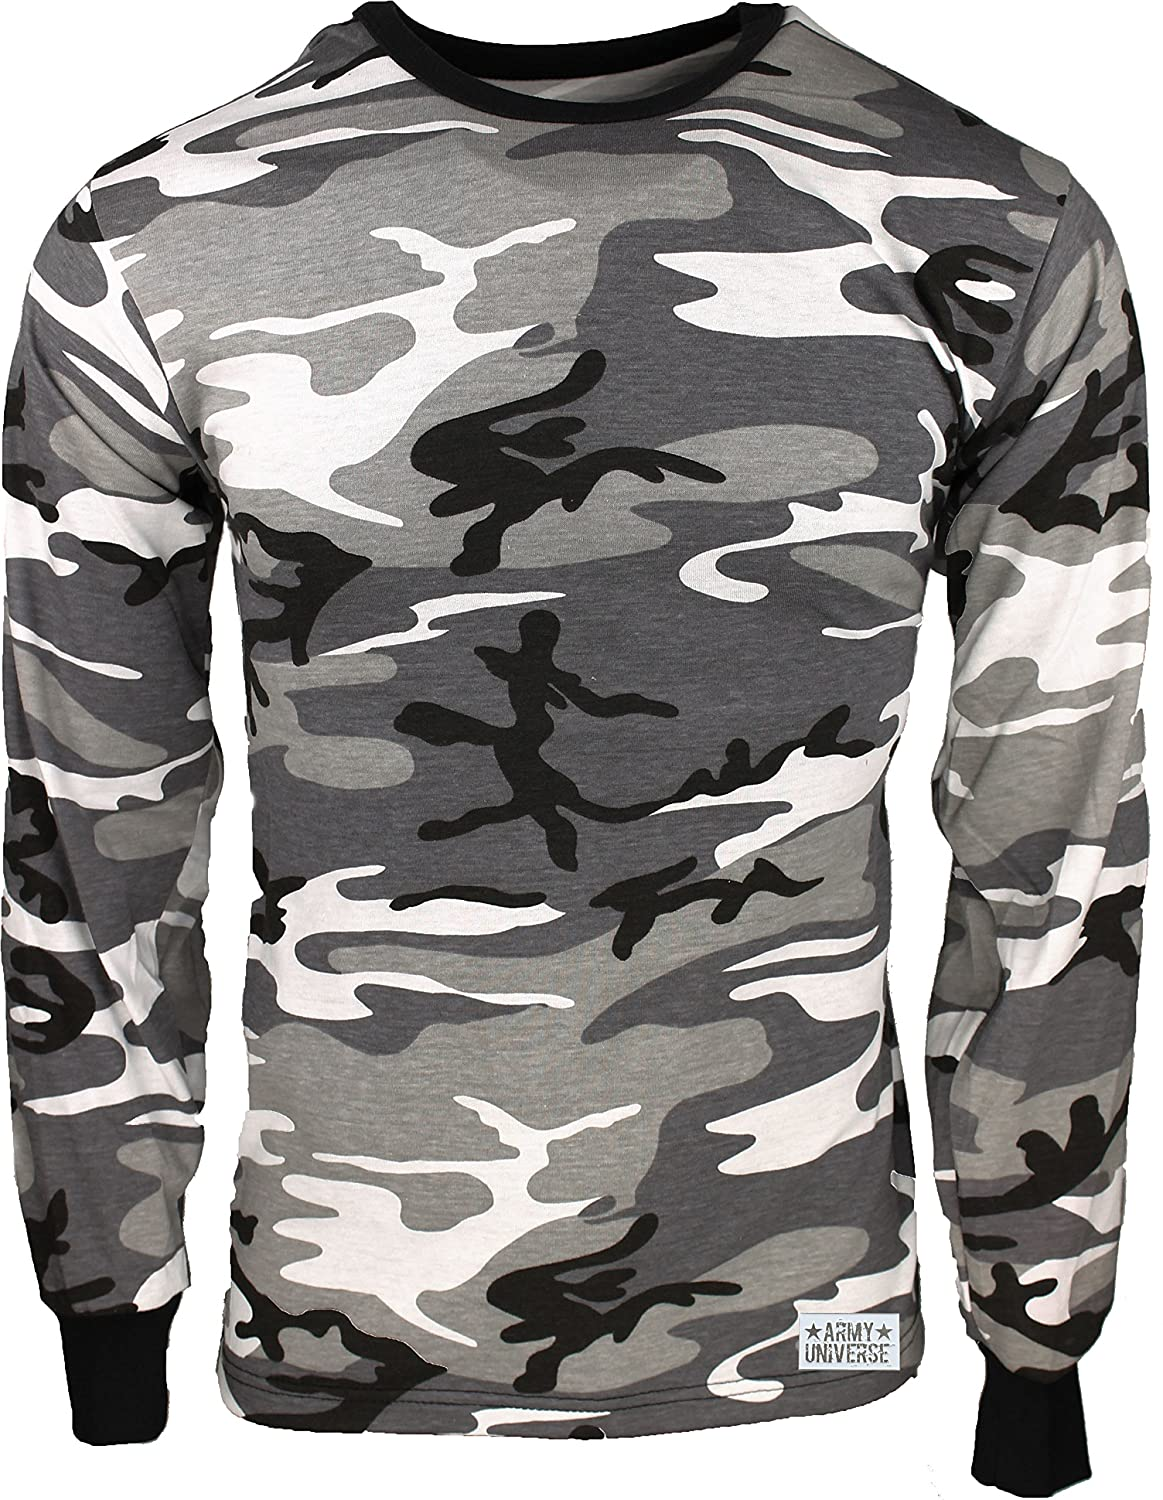 Amazon.com  Military Camouflage Long Sleeve T-Shirt Camo Army Tee With  ArmyUniverse Pin  Clothing 970e87b213c